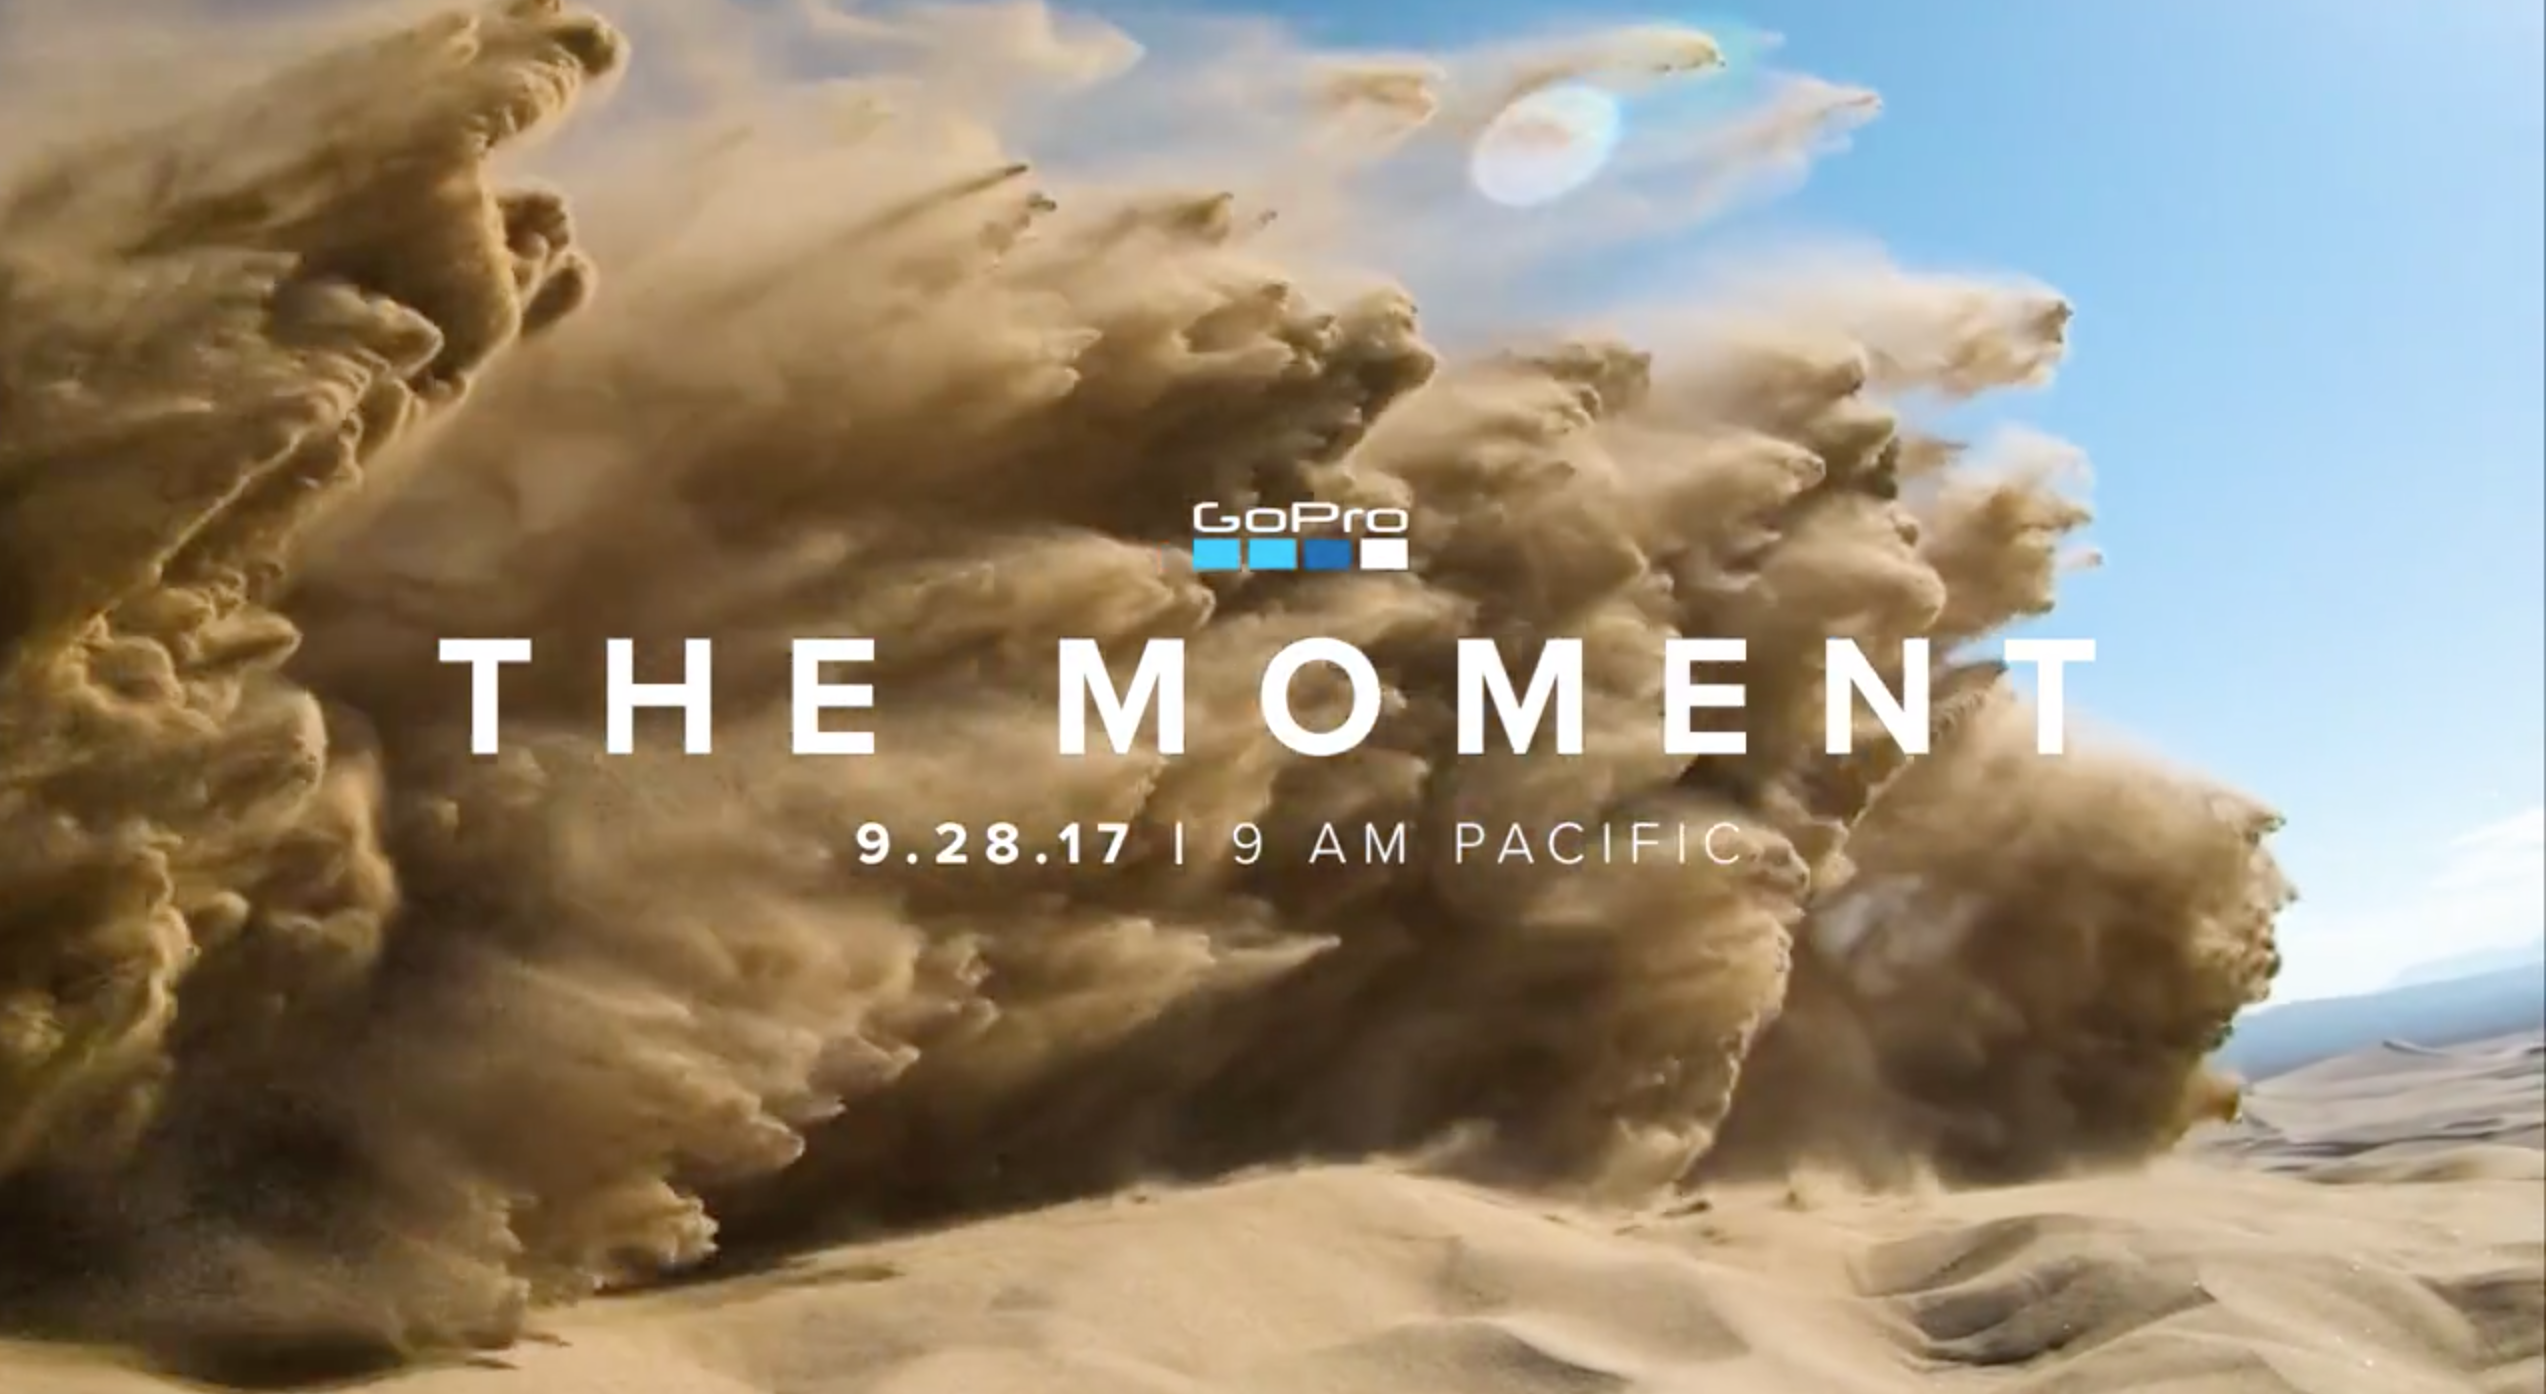 GoPro New Product Announcements LIVE STREAM Event! 4